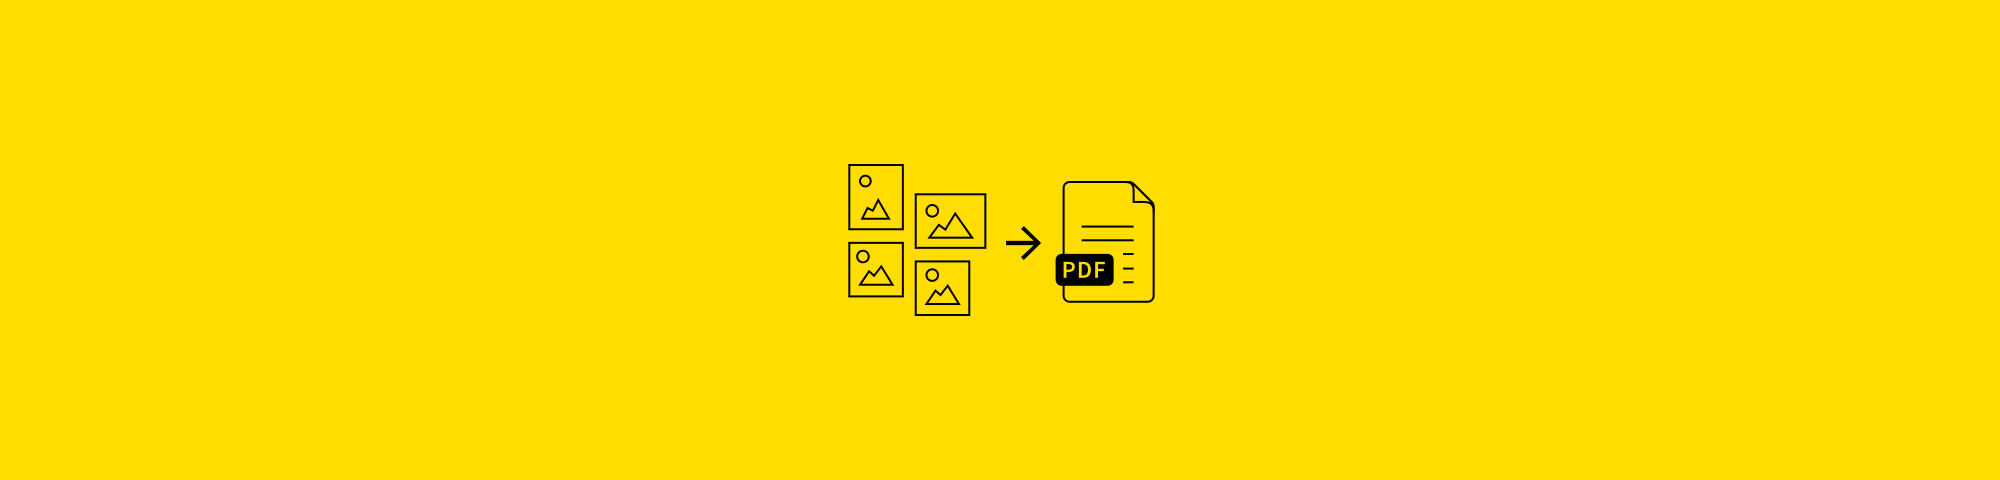 How to Save a PDF as a JPEG for Free